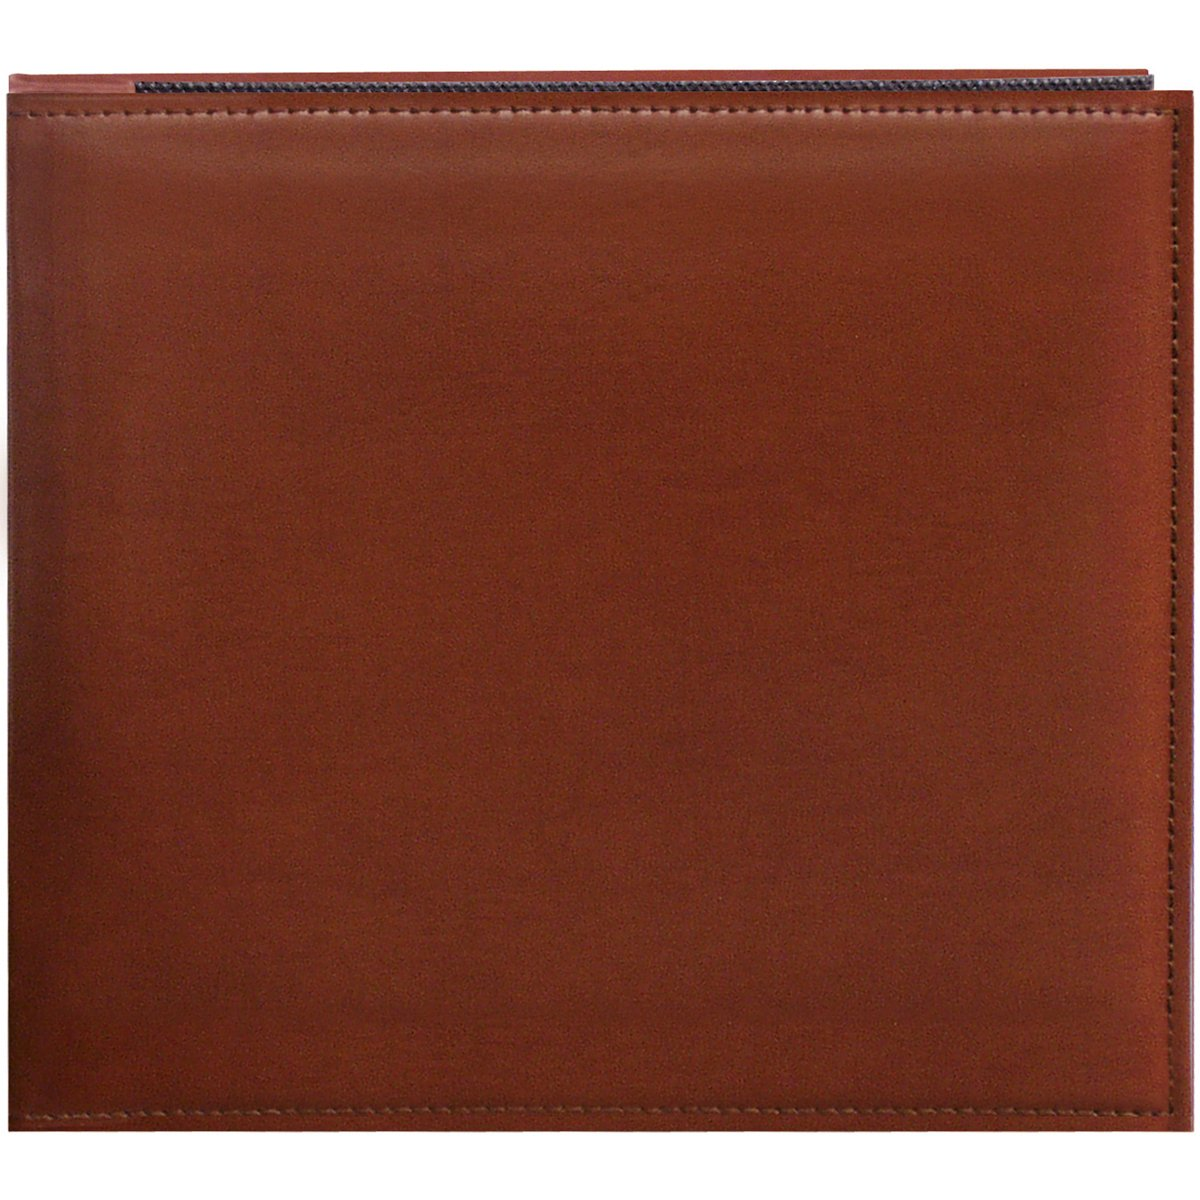 Pioneer 8 Inch by 8 Inch Snapload Sewn Leatherette Memory Book, Brown